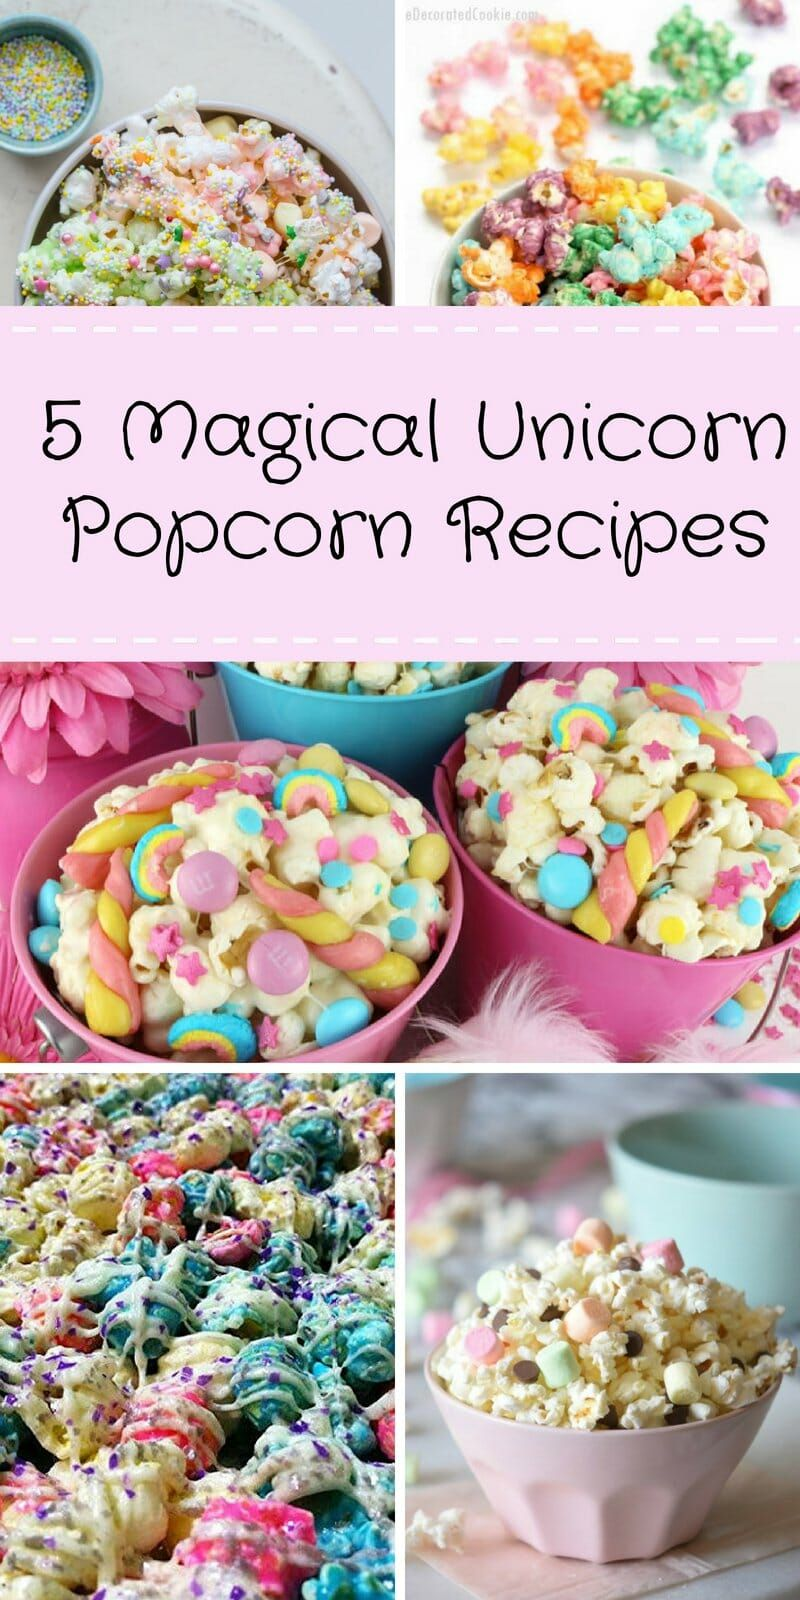 Unicorn Popcorn  5 Magical Recipes - Birthday snacks, Birthday party food, Popcorn recipes, Birthday food, Unicorn themed birthday party, Birthday party snacks - Looking for a simple unicorn popcorn recipe  Try these 5 simple Unicorn popcorn recipes, A recipe for every